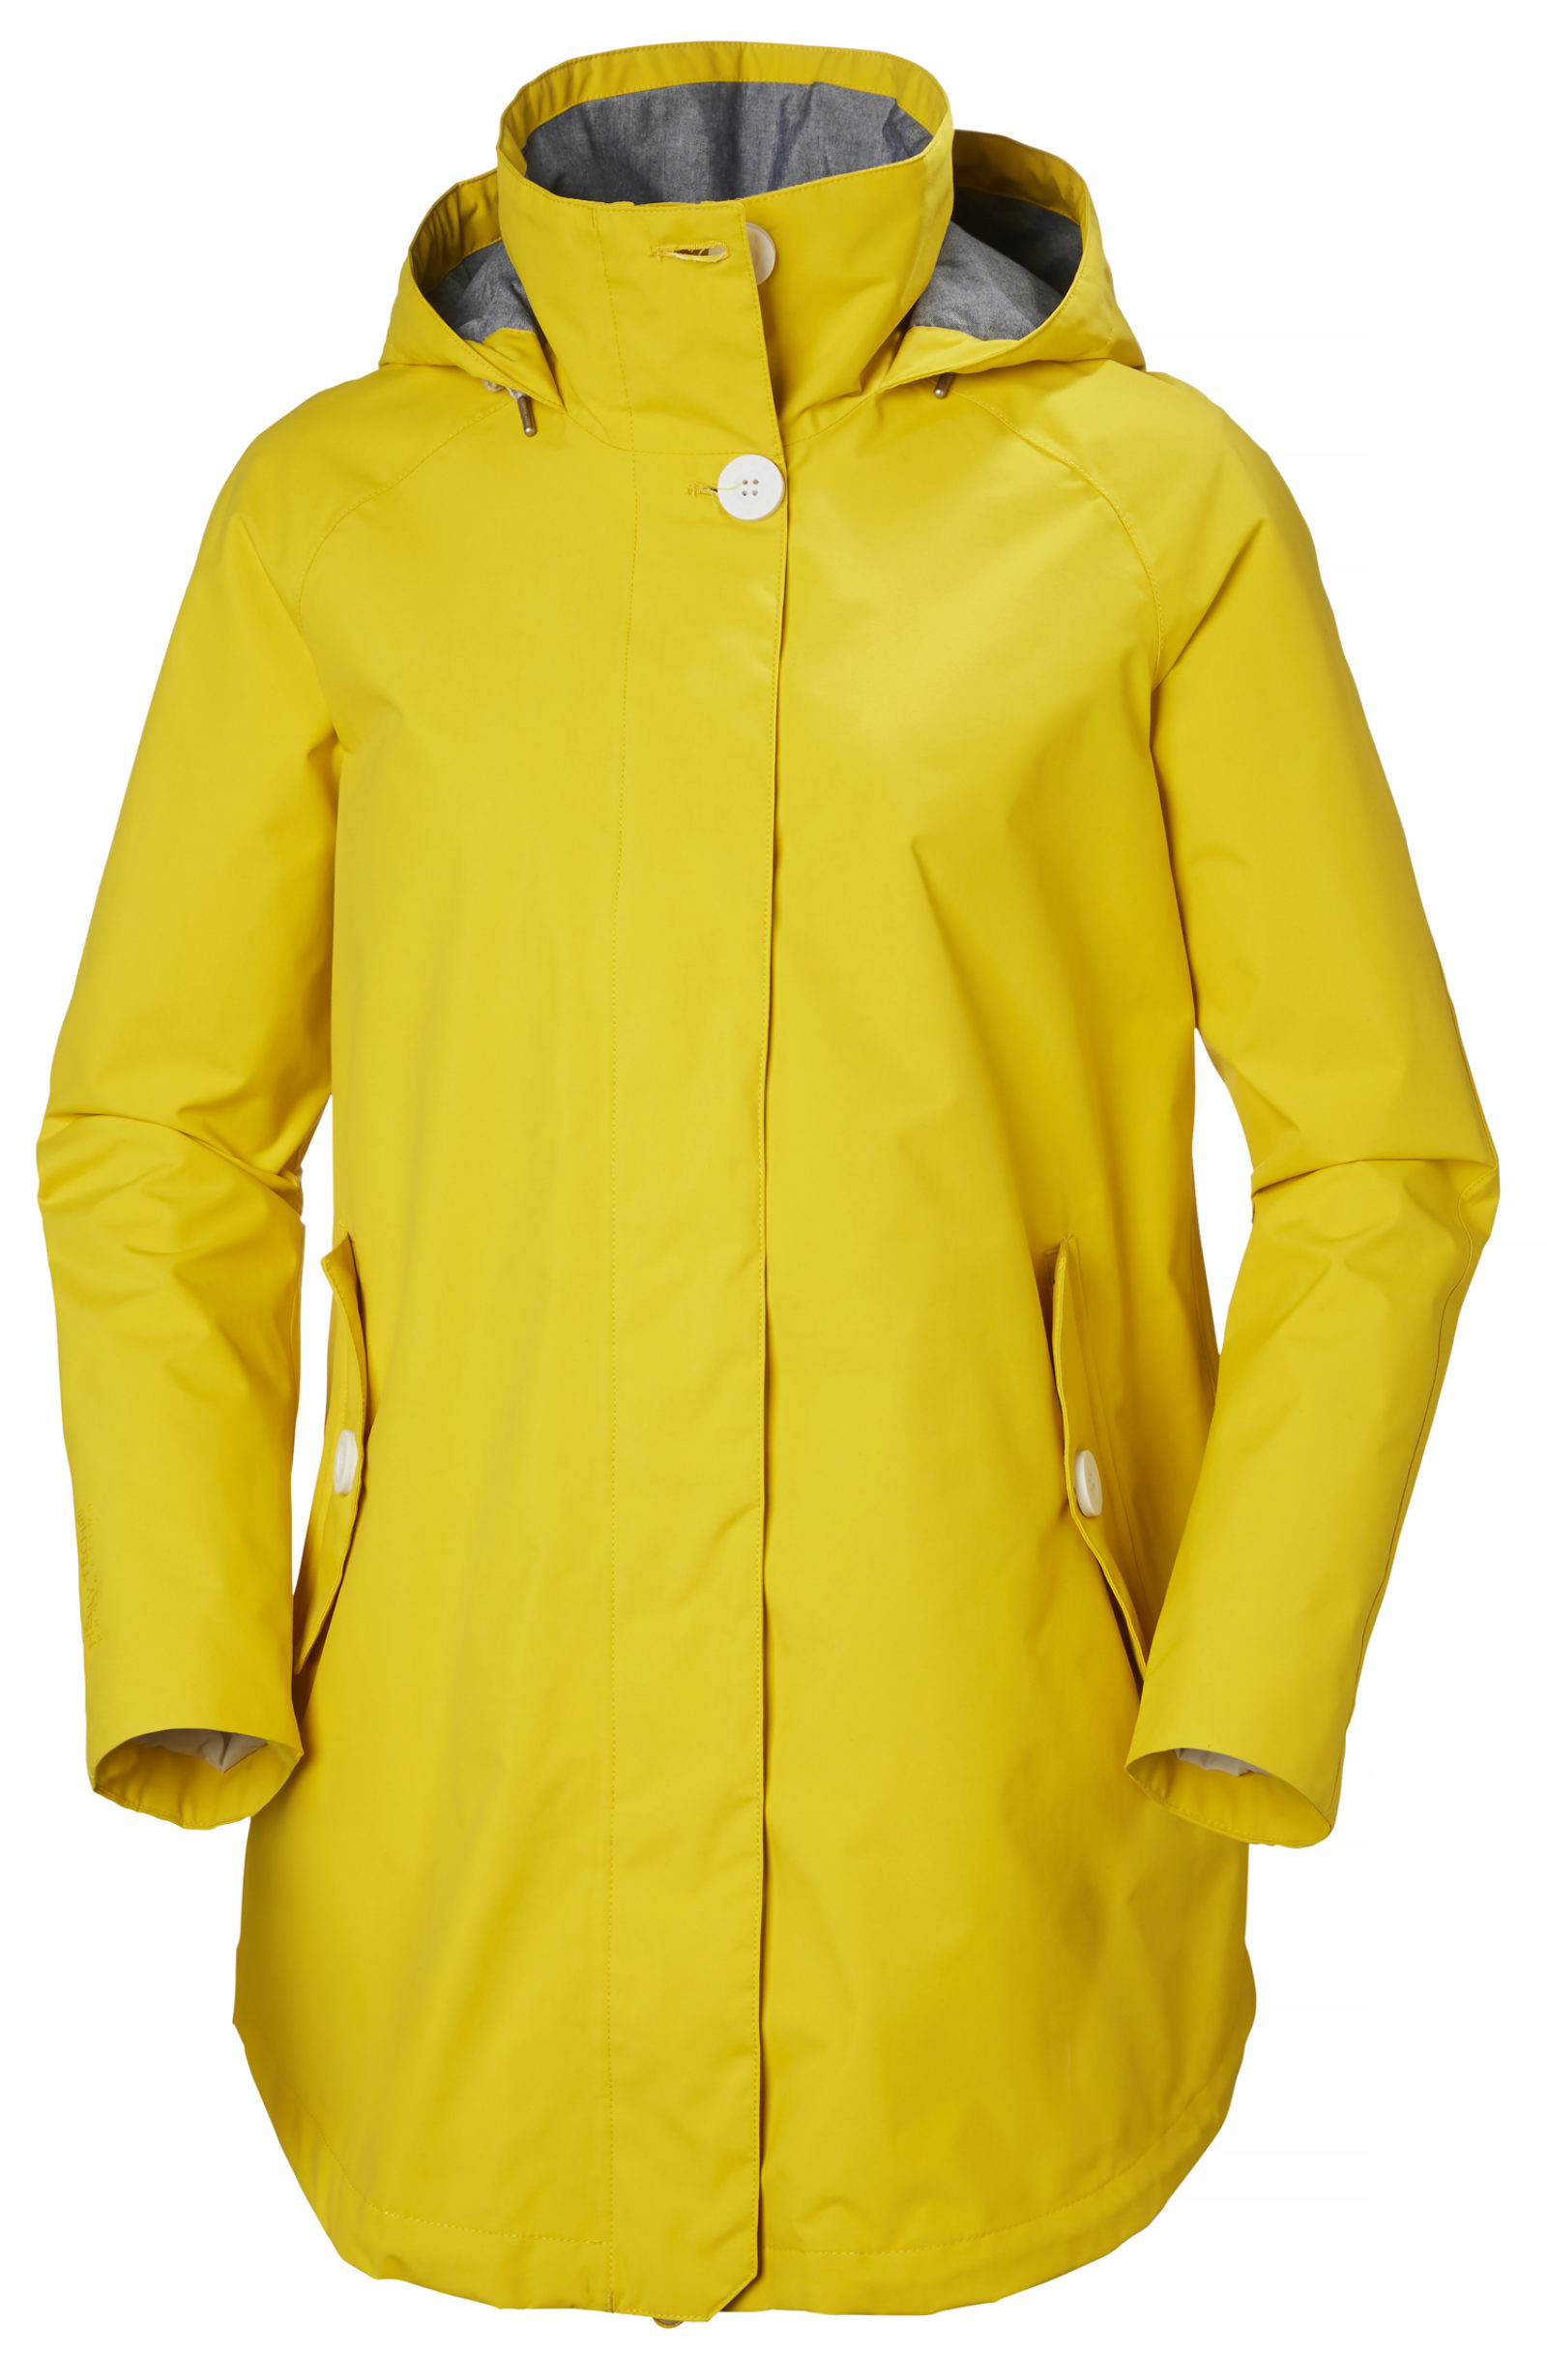 5e6e3f78331 The Best Raincoats for Spring Summer —